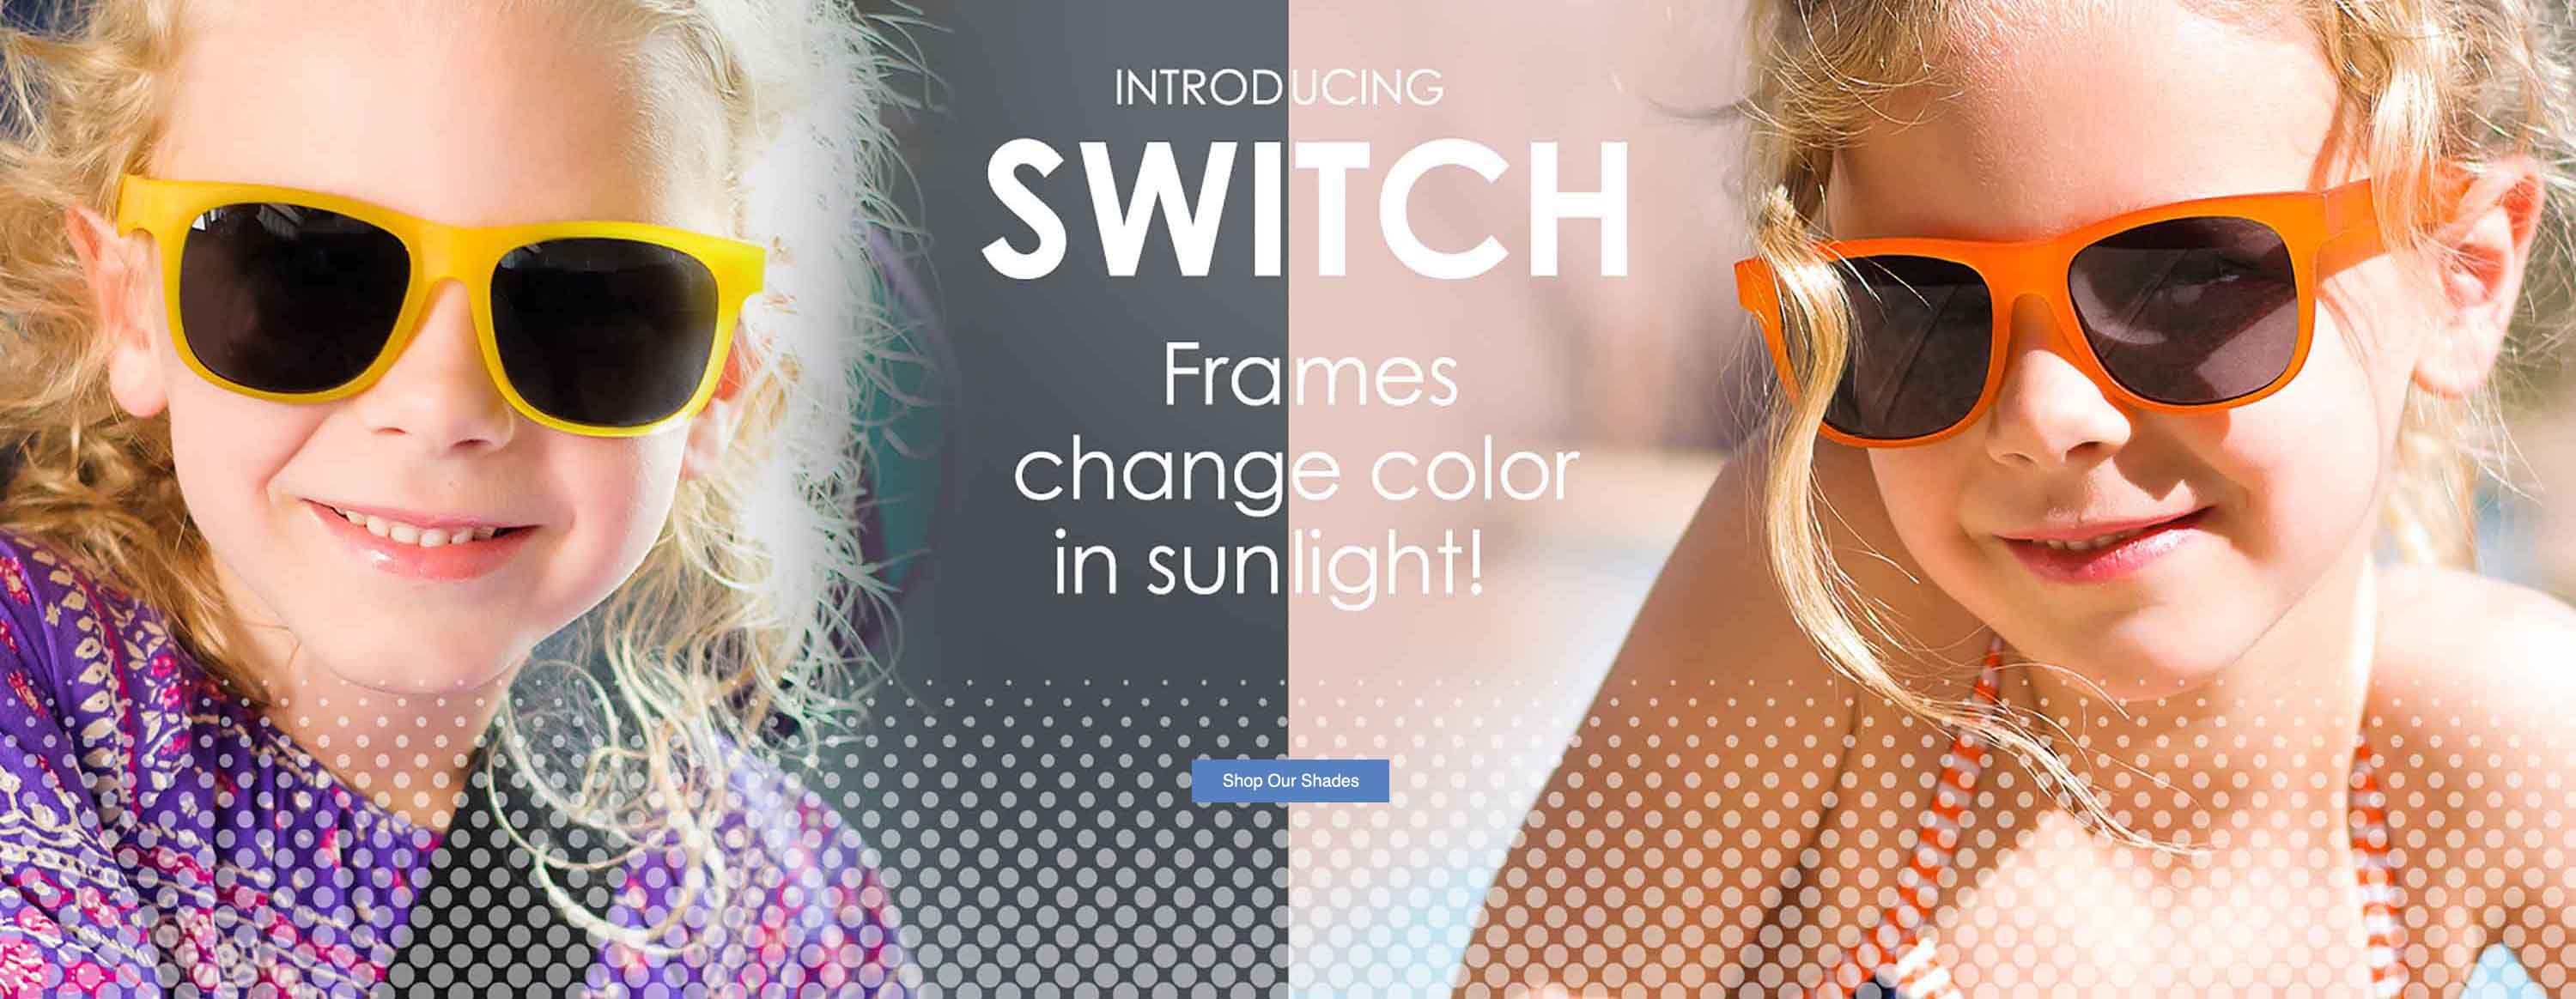 REAL_SWITCH_WEB_BANNER_WP_3